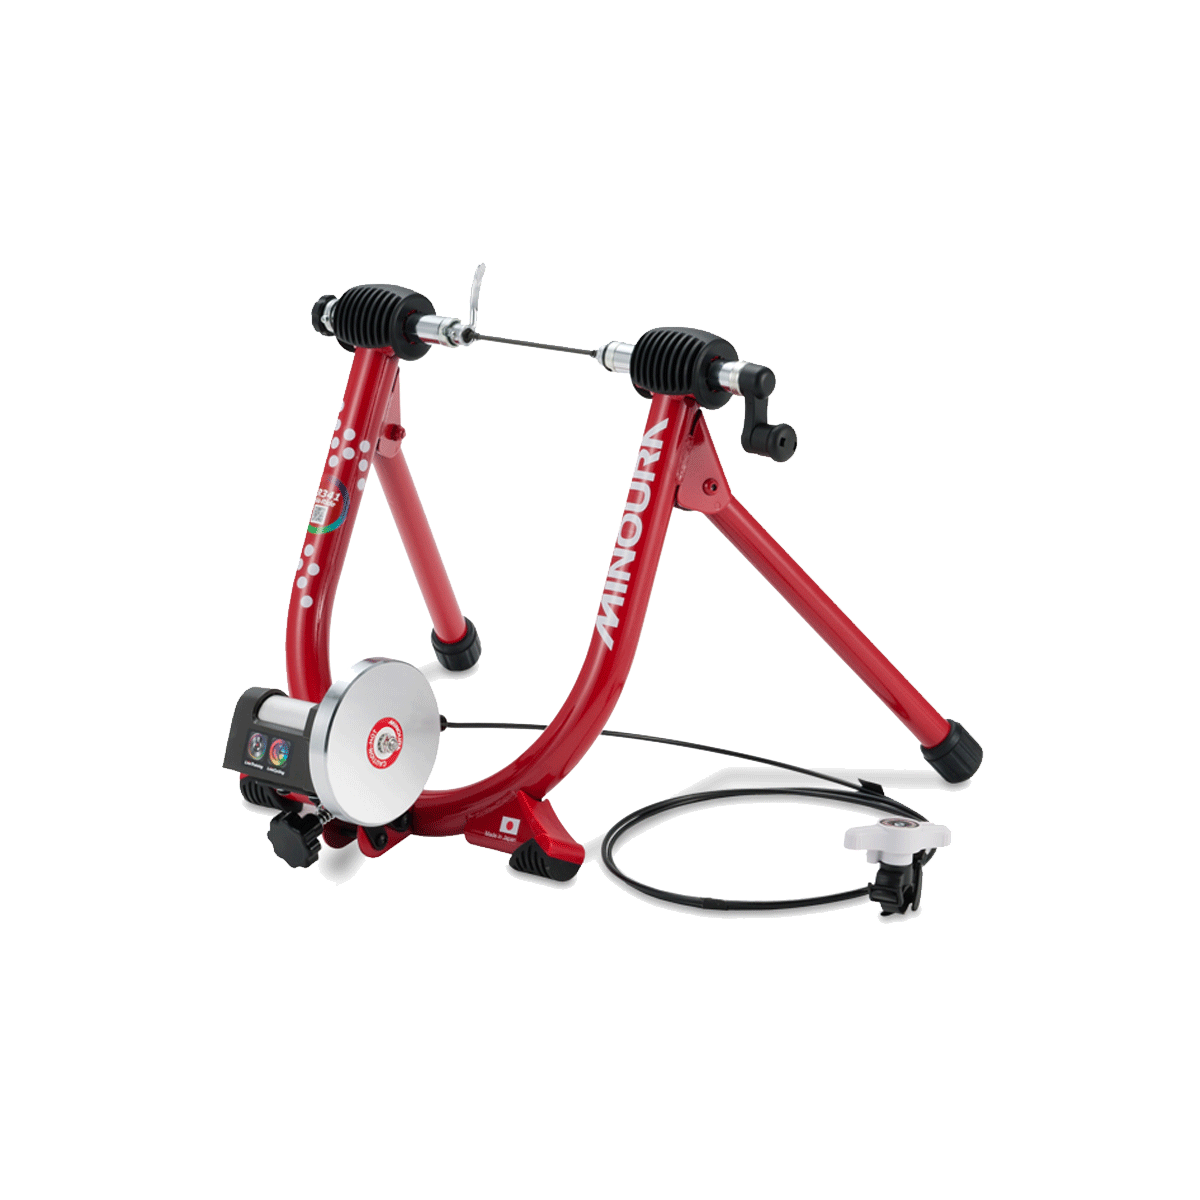 Minoura LR341 Trainer Red: Allows High-Speed/Low-Resistance Training